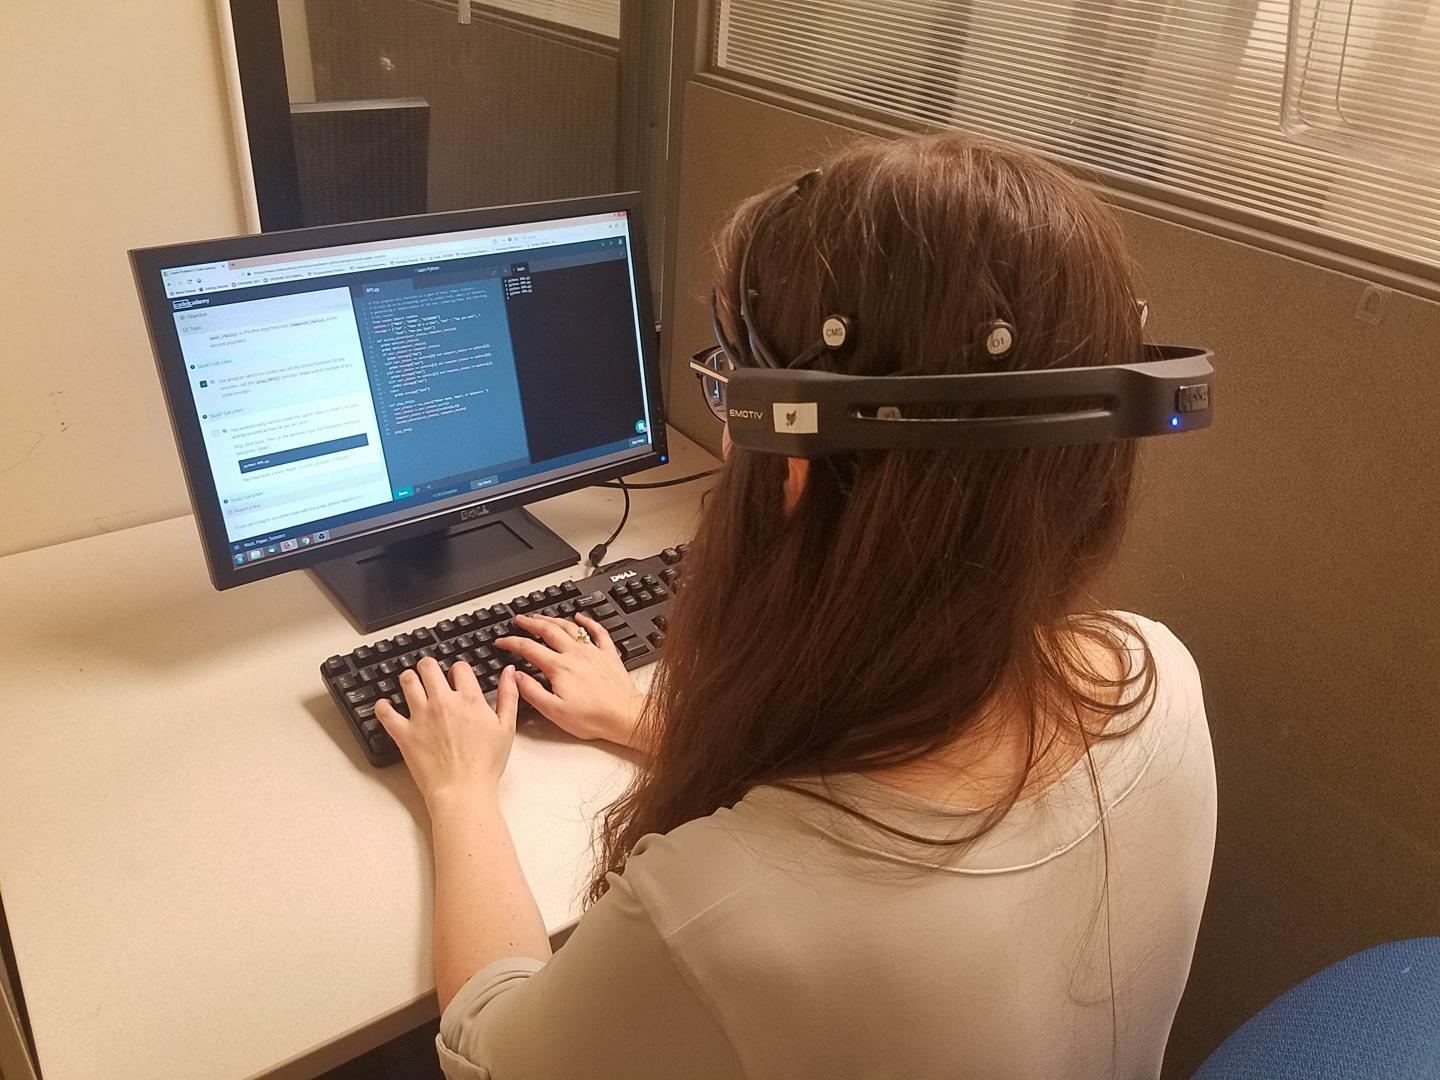 Measuring Brain Activity while Coding